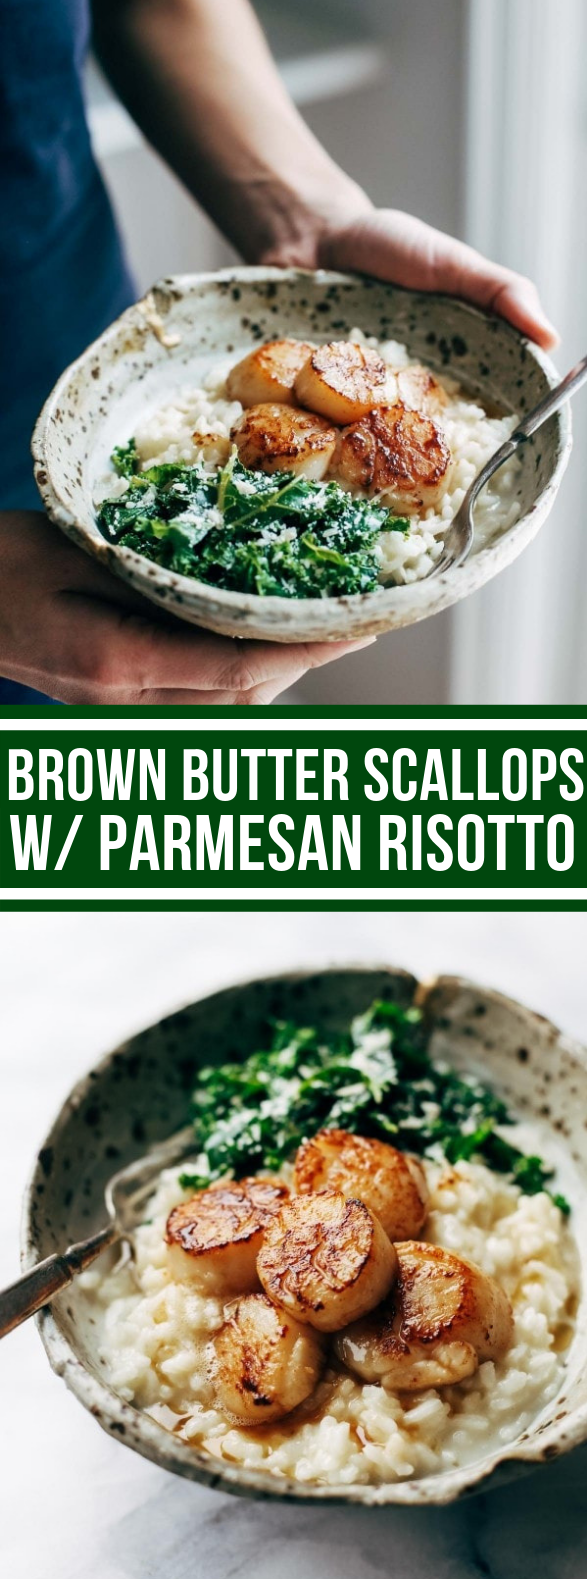 Brown Butter Scallops with Parmesan Risotto #dinner #bestrecipe